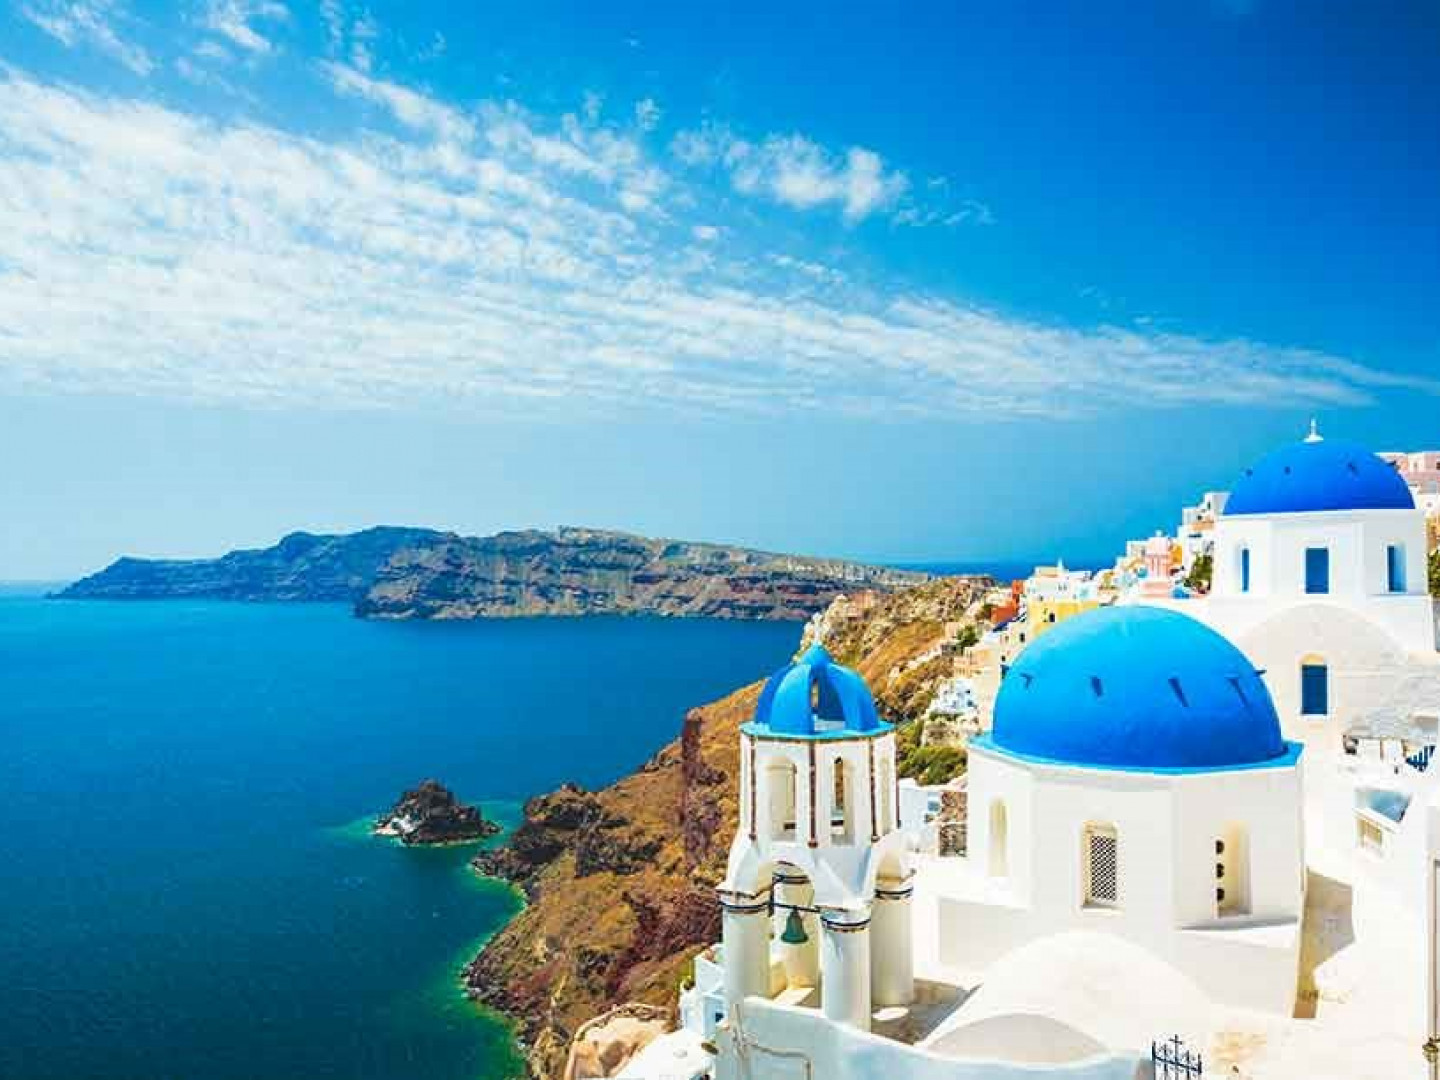 5. Santorini is an active volcano